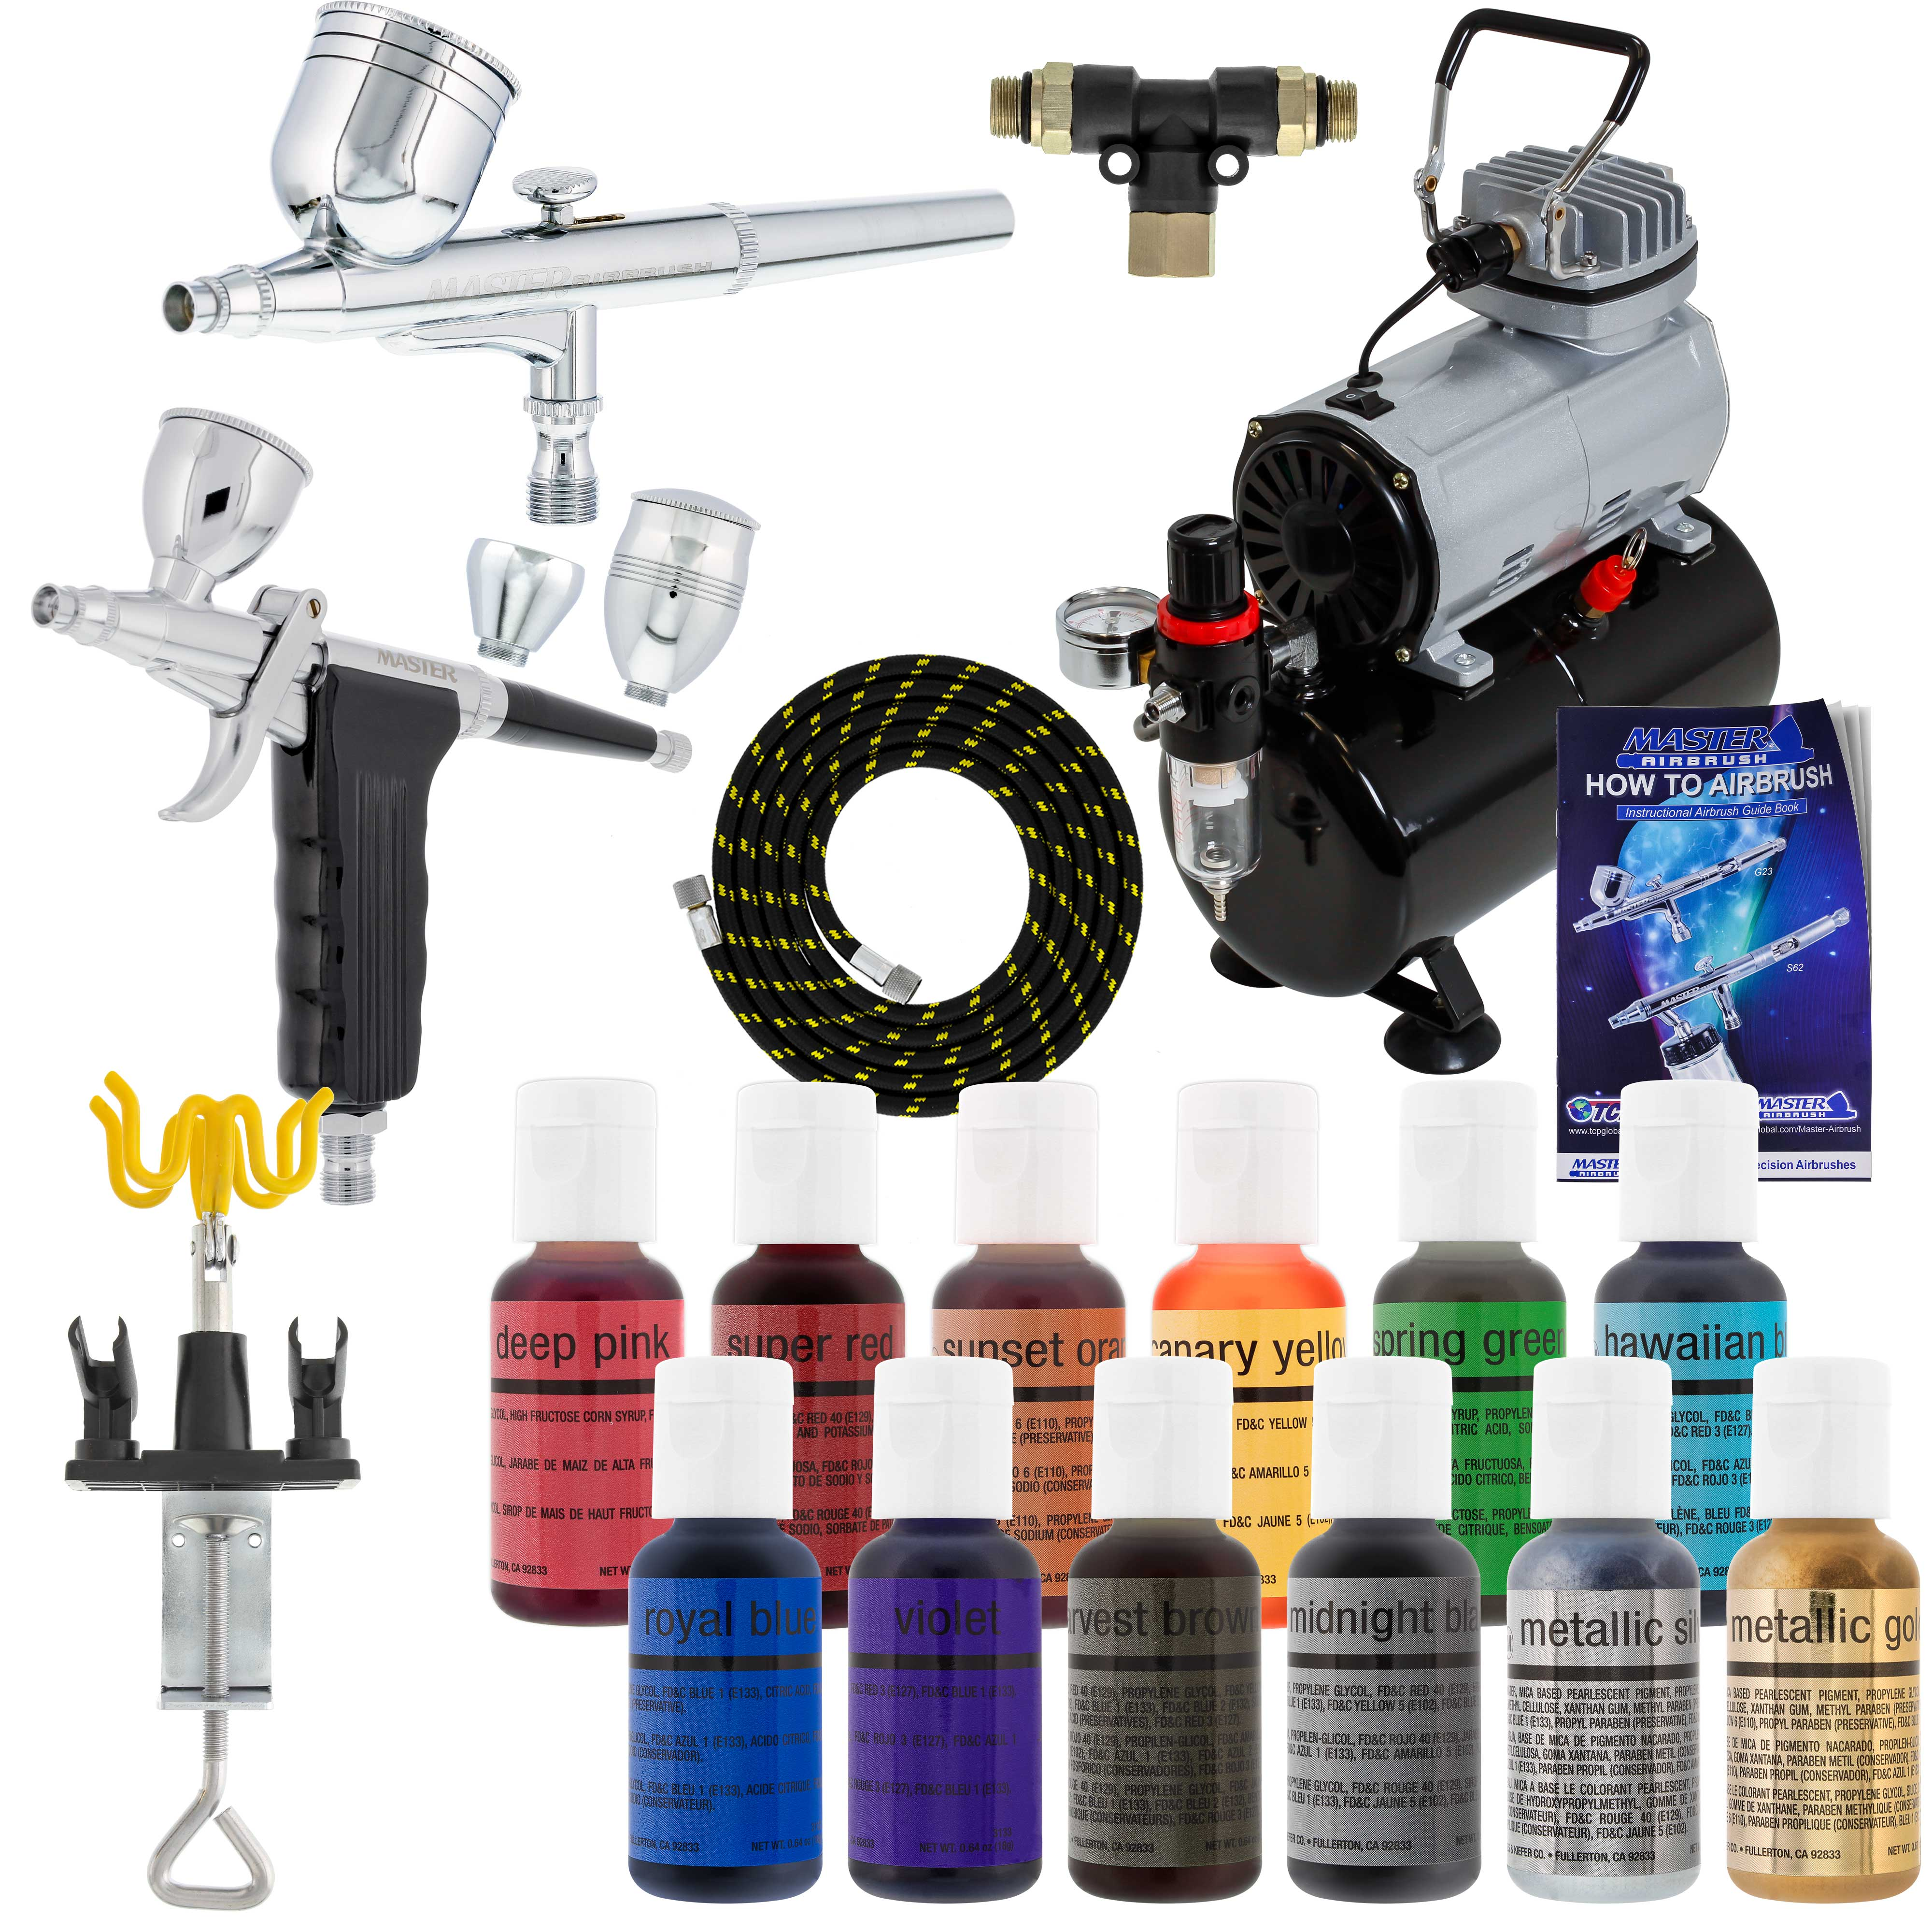 Details About 2 Airbrush Cake Decorating Tank Air Compressor Kit 12 Chefmaster Food Colors Set